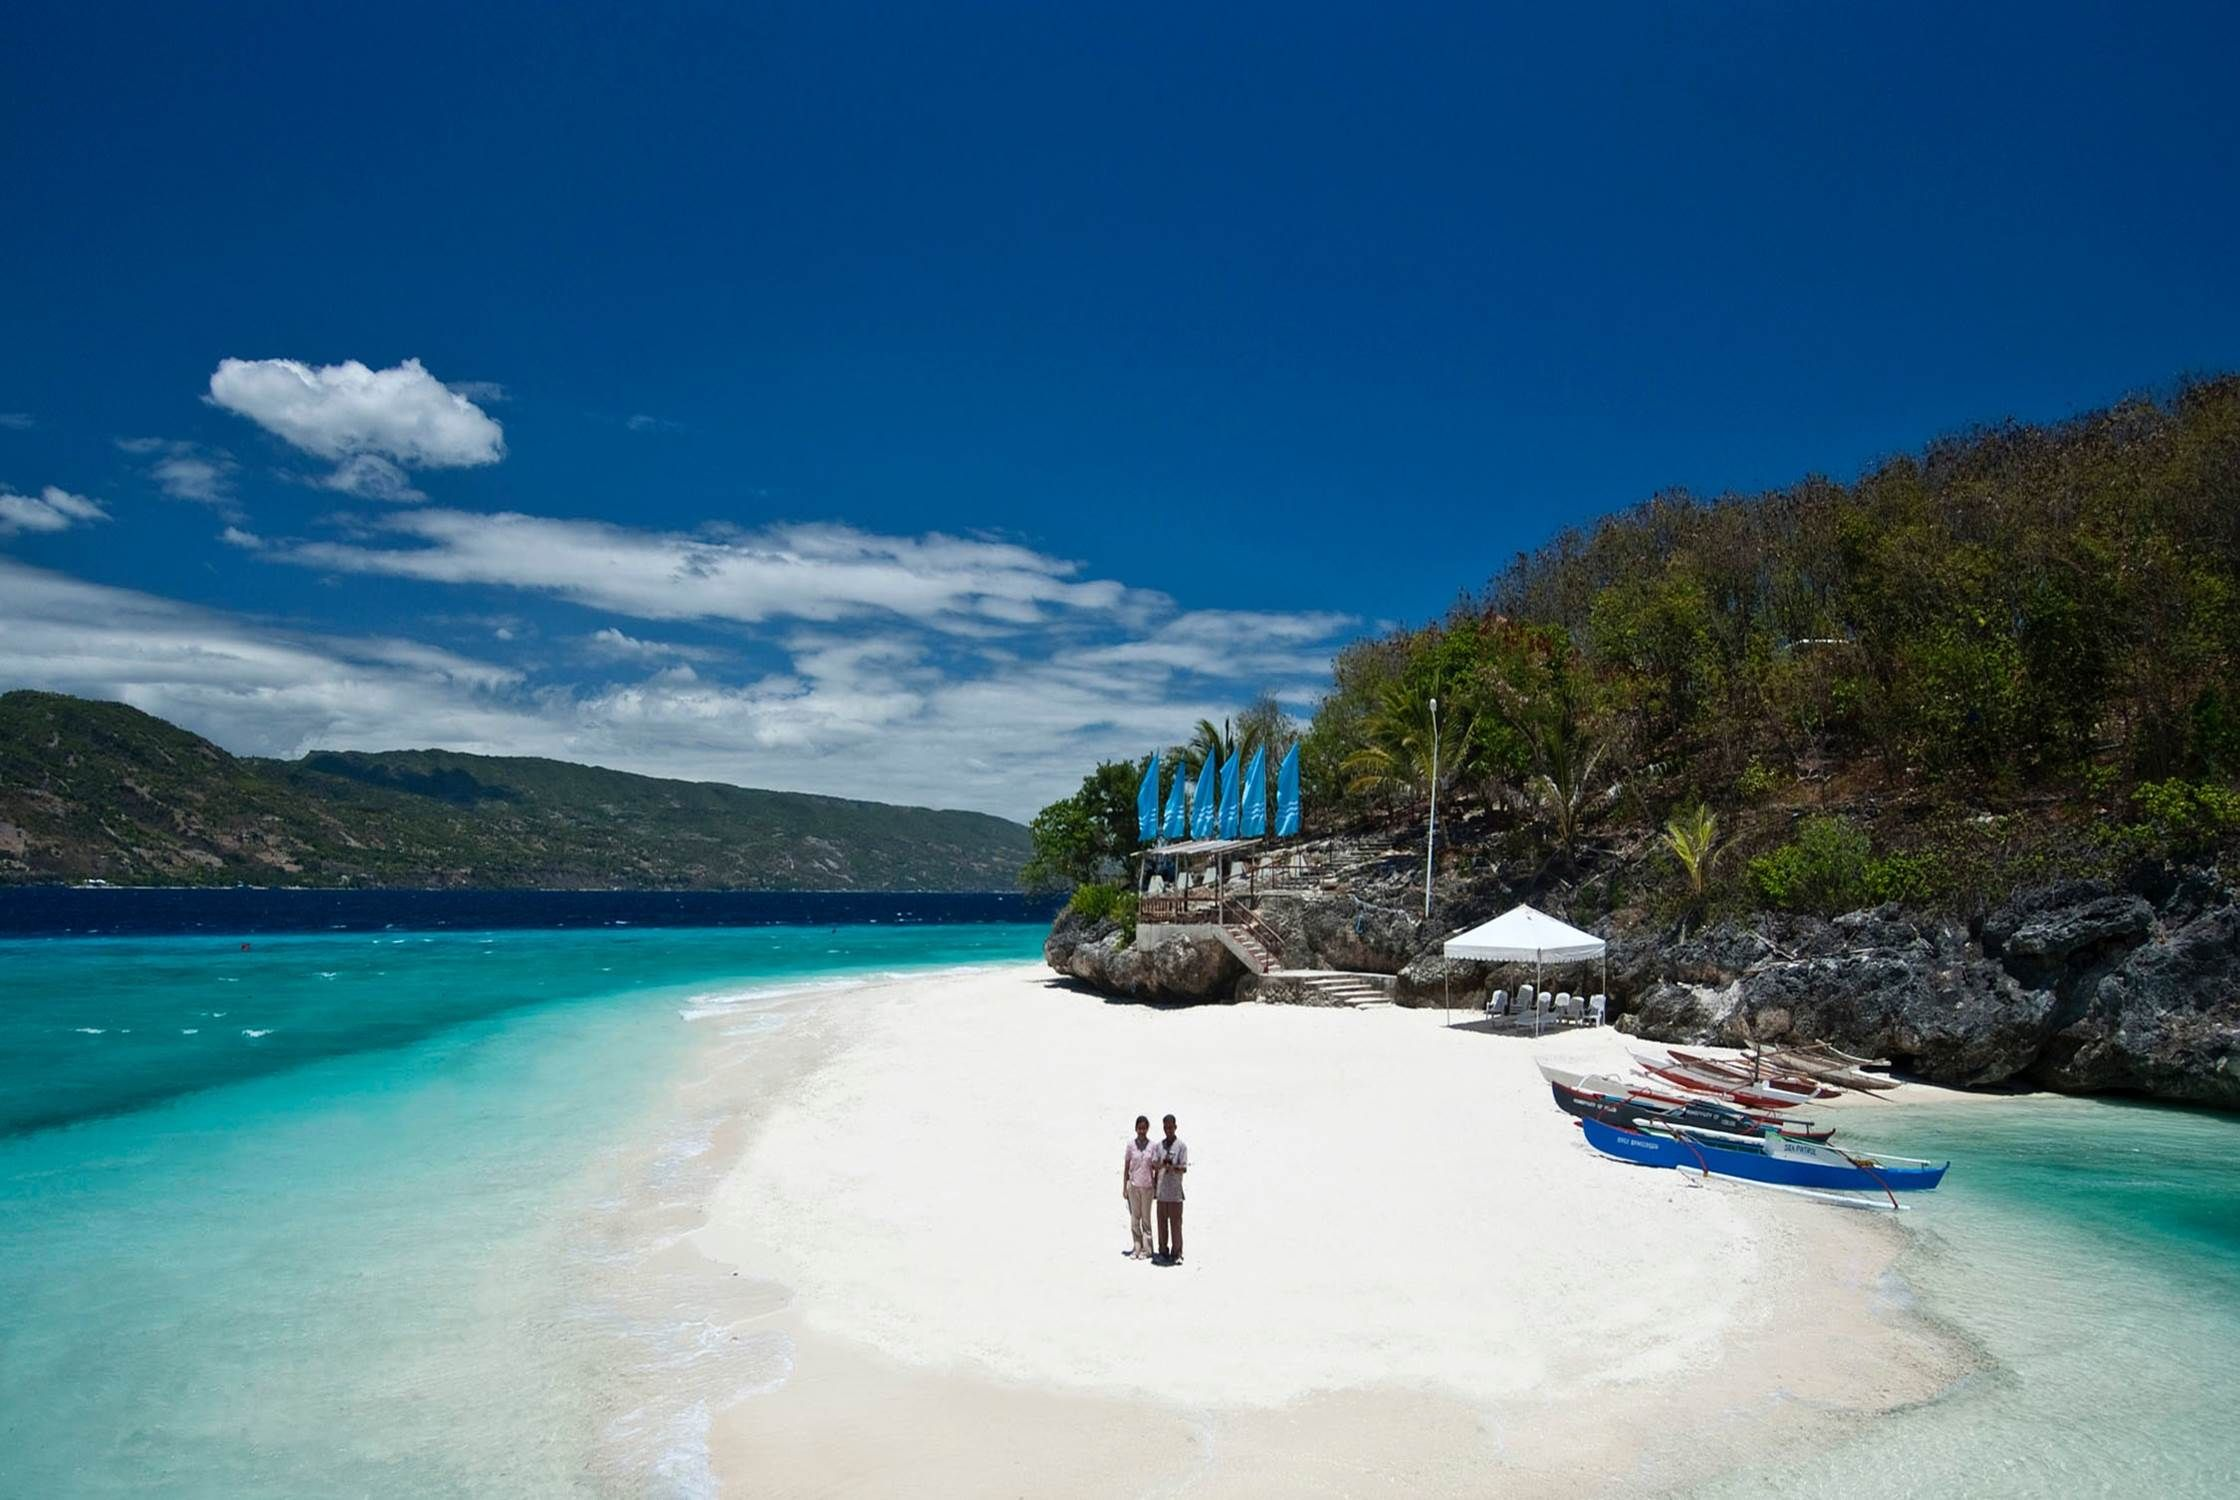 Cebu Island is truly blessed with magnificent beaches and